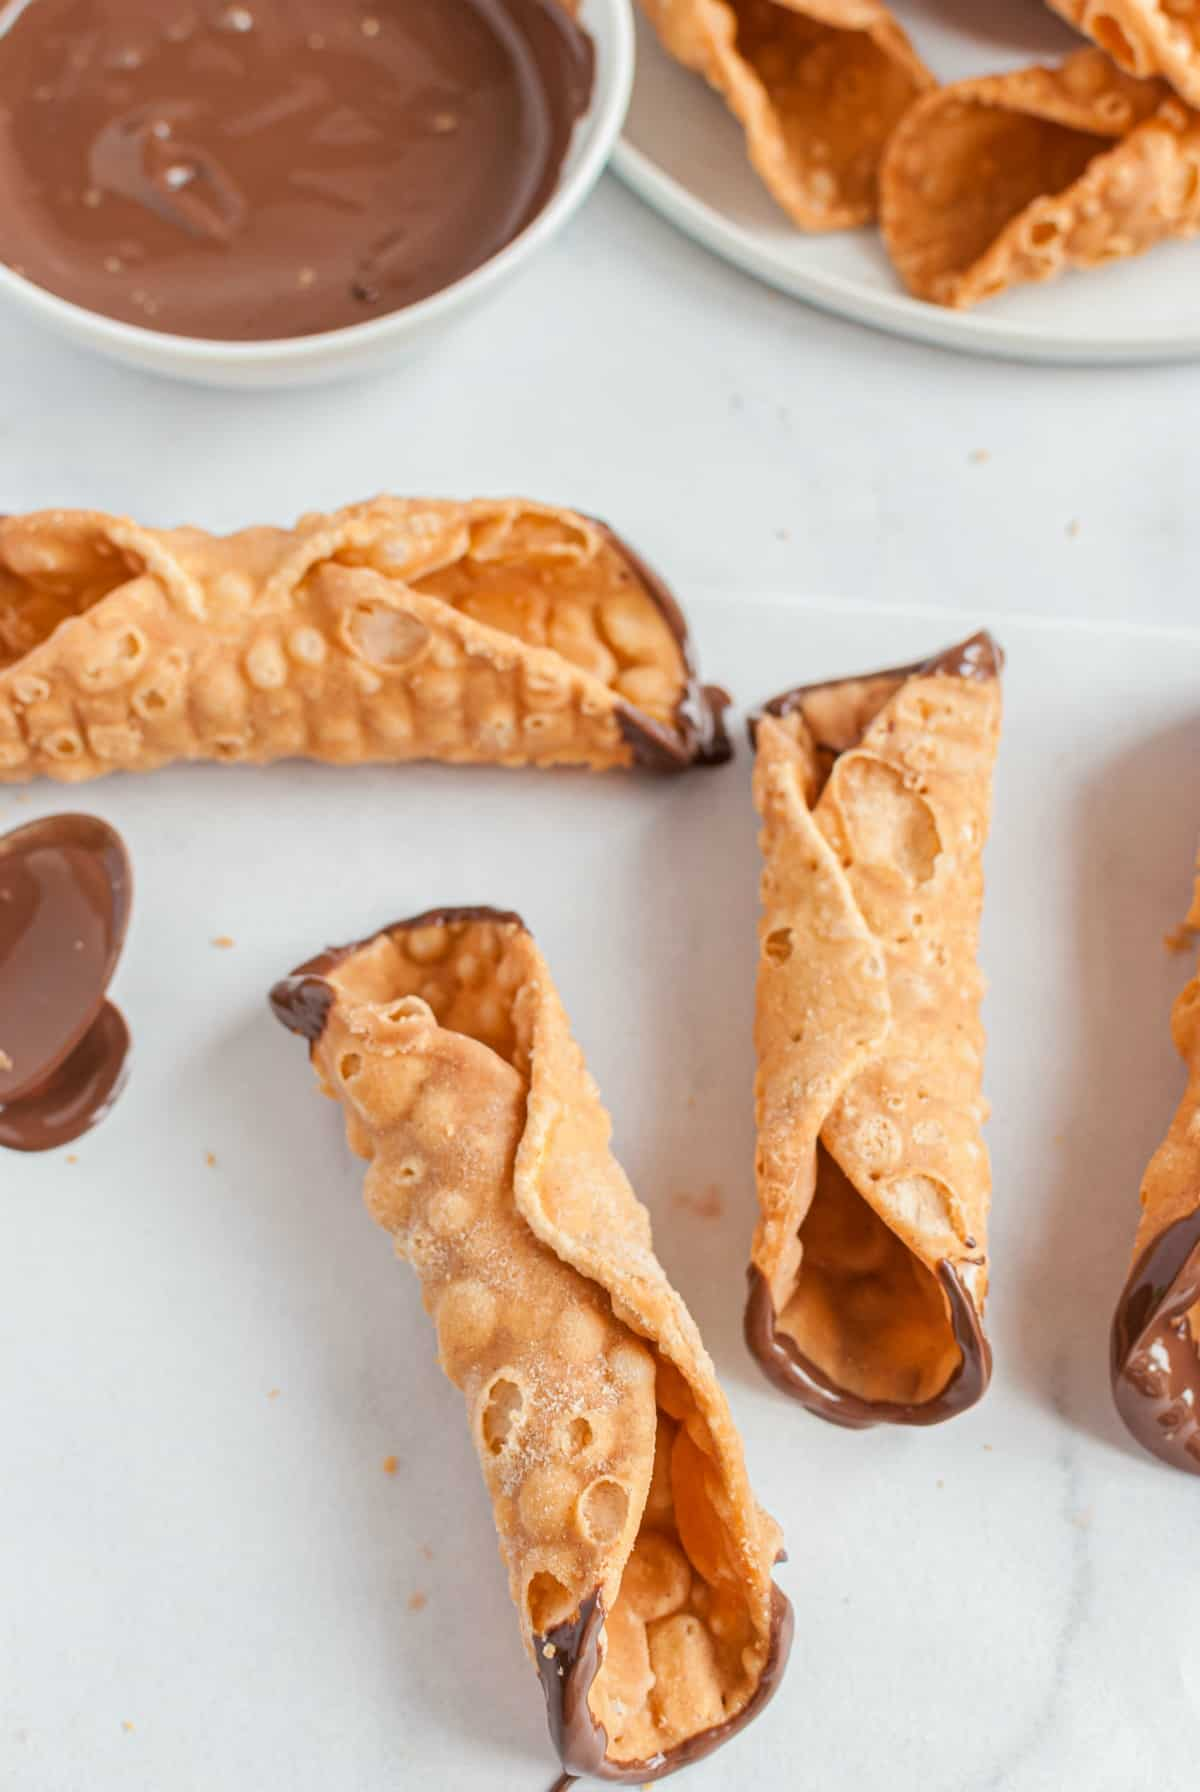 Cannoli shells dipped in chocolate.